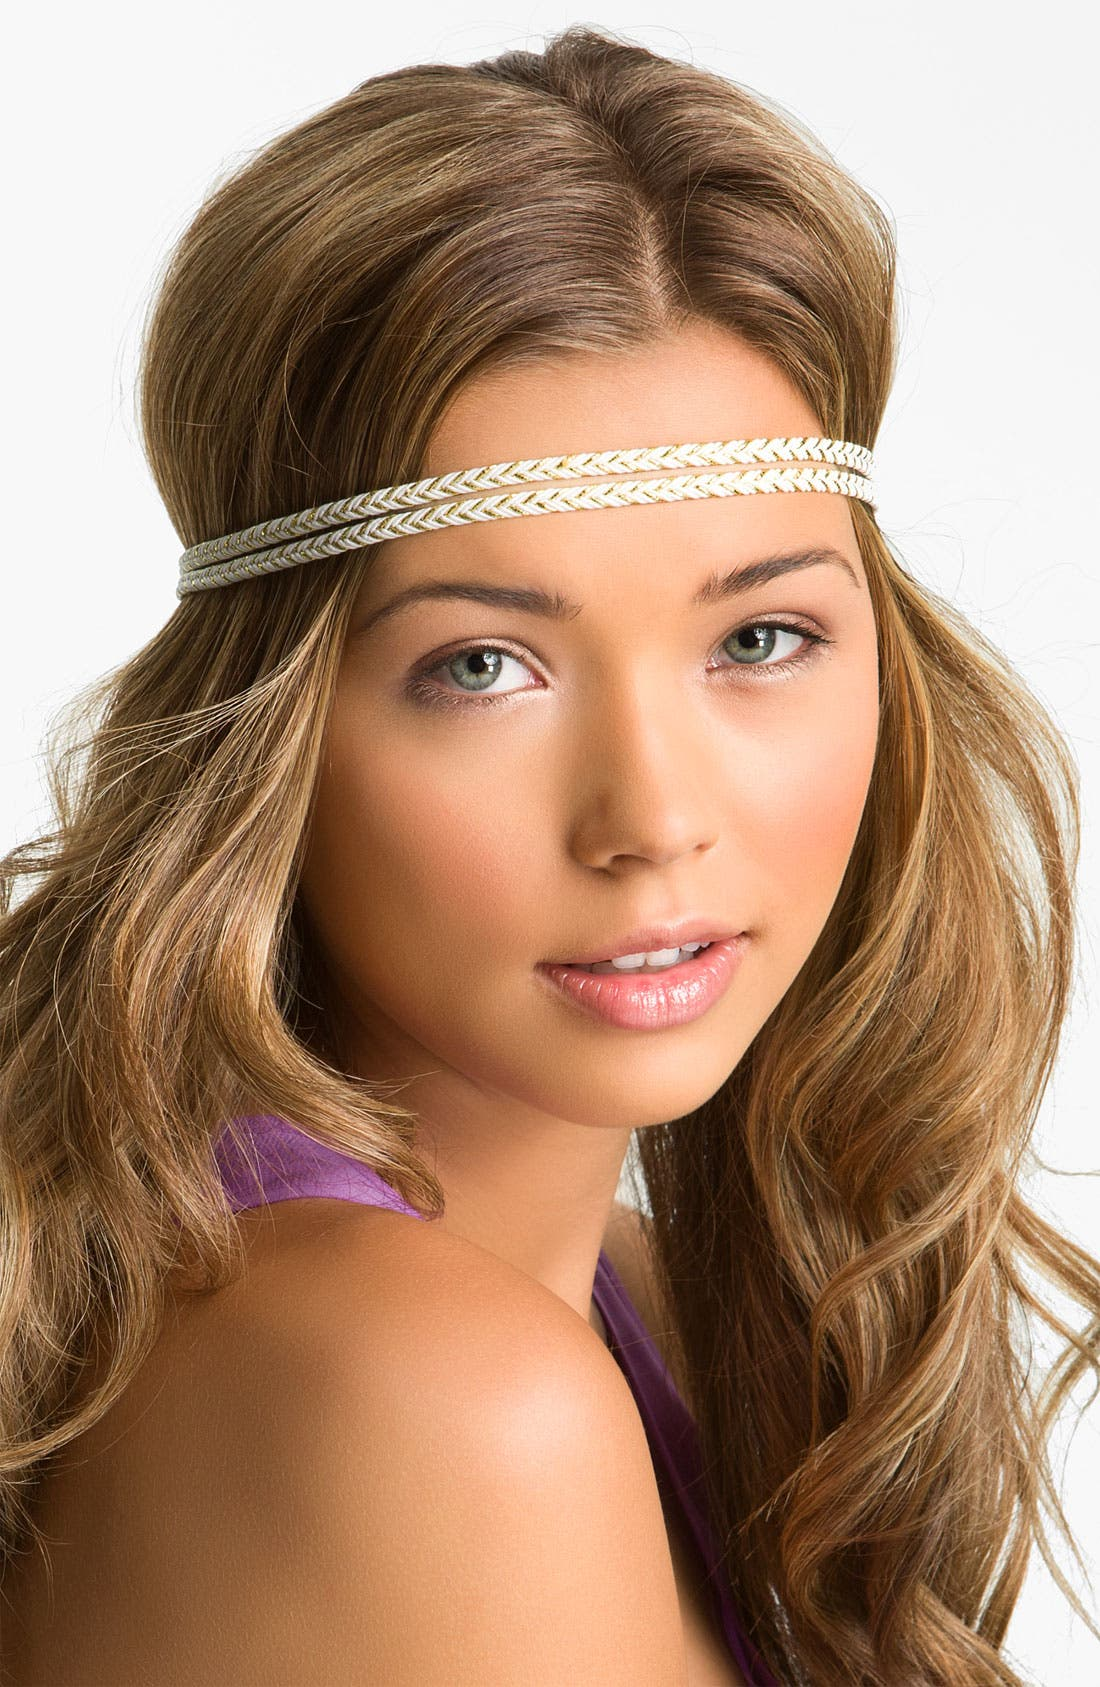 Alternate Image 1 Selected - Cachet Creations Metallic Braid Headband